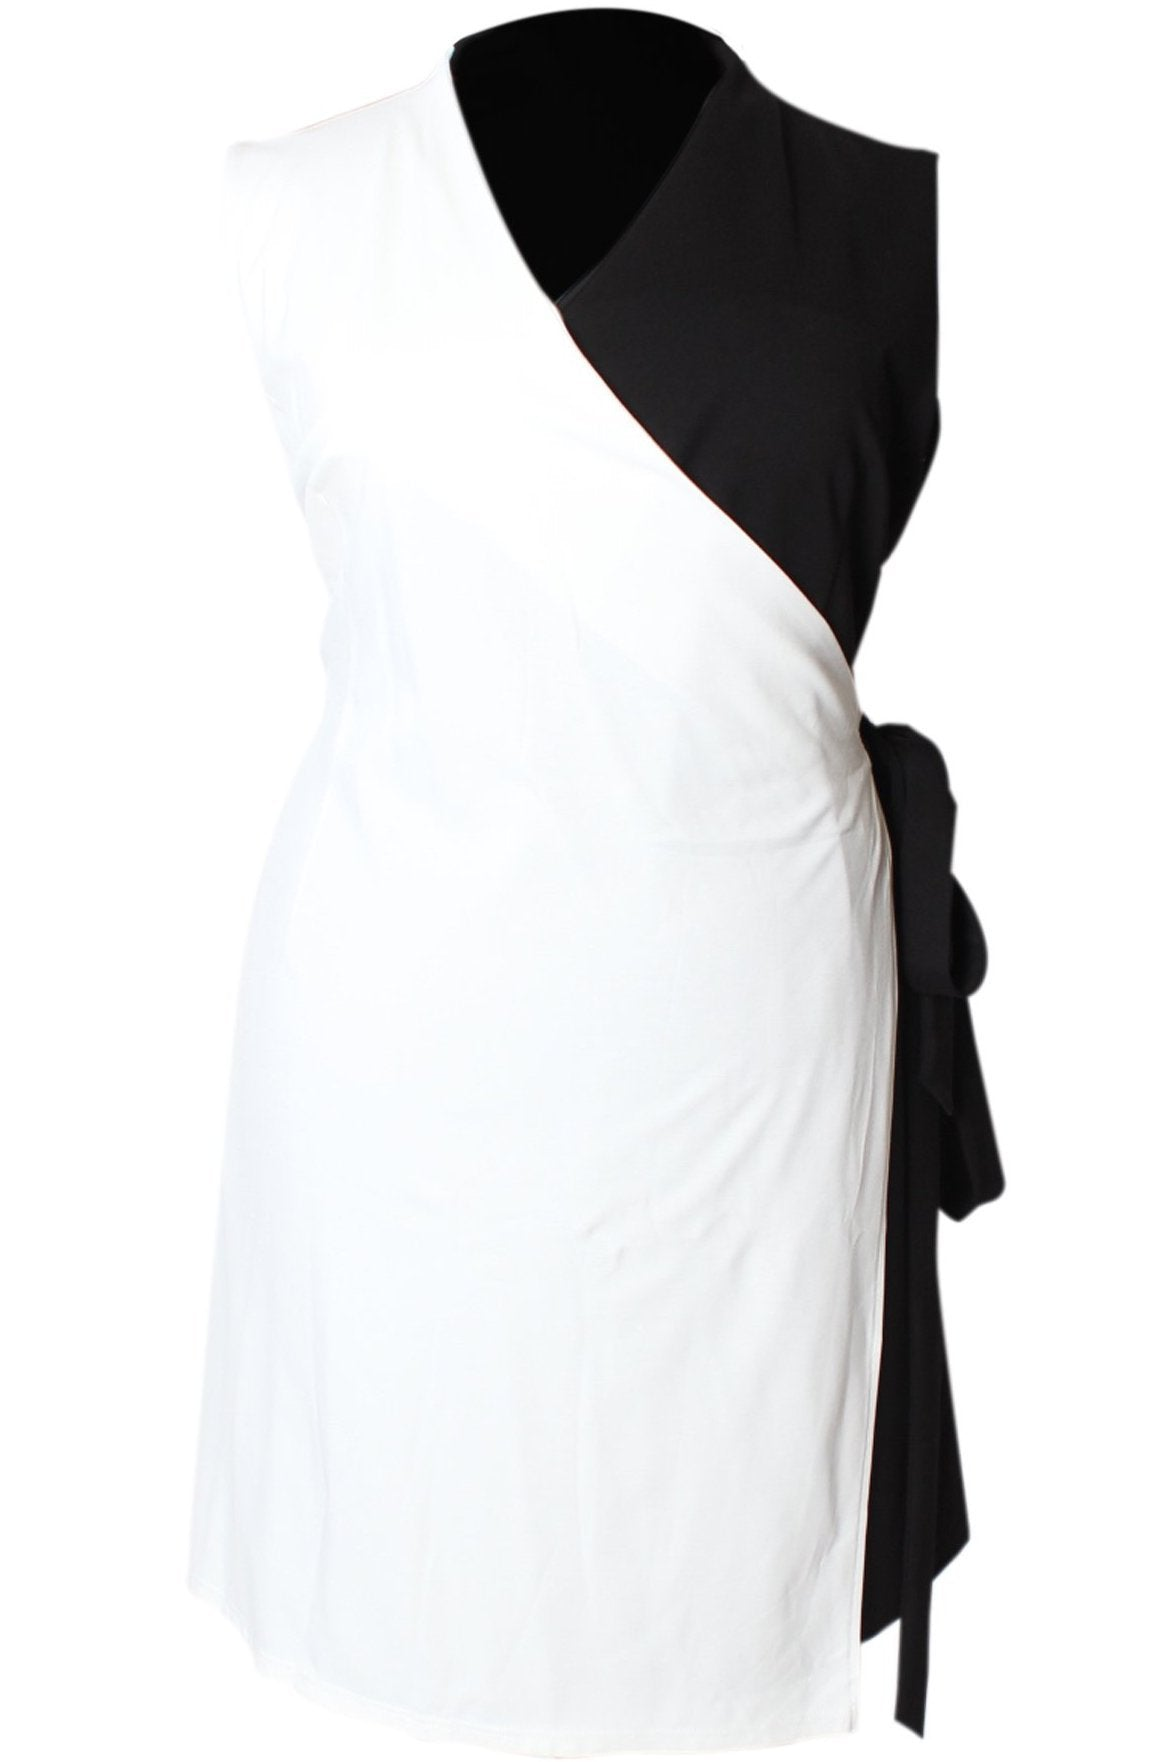 Color Block Power Dress - Black & White